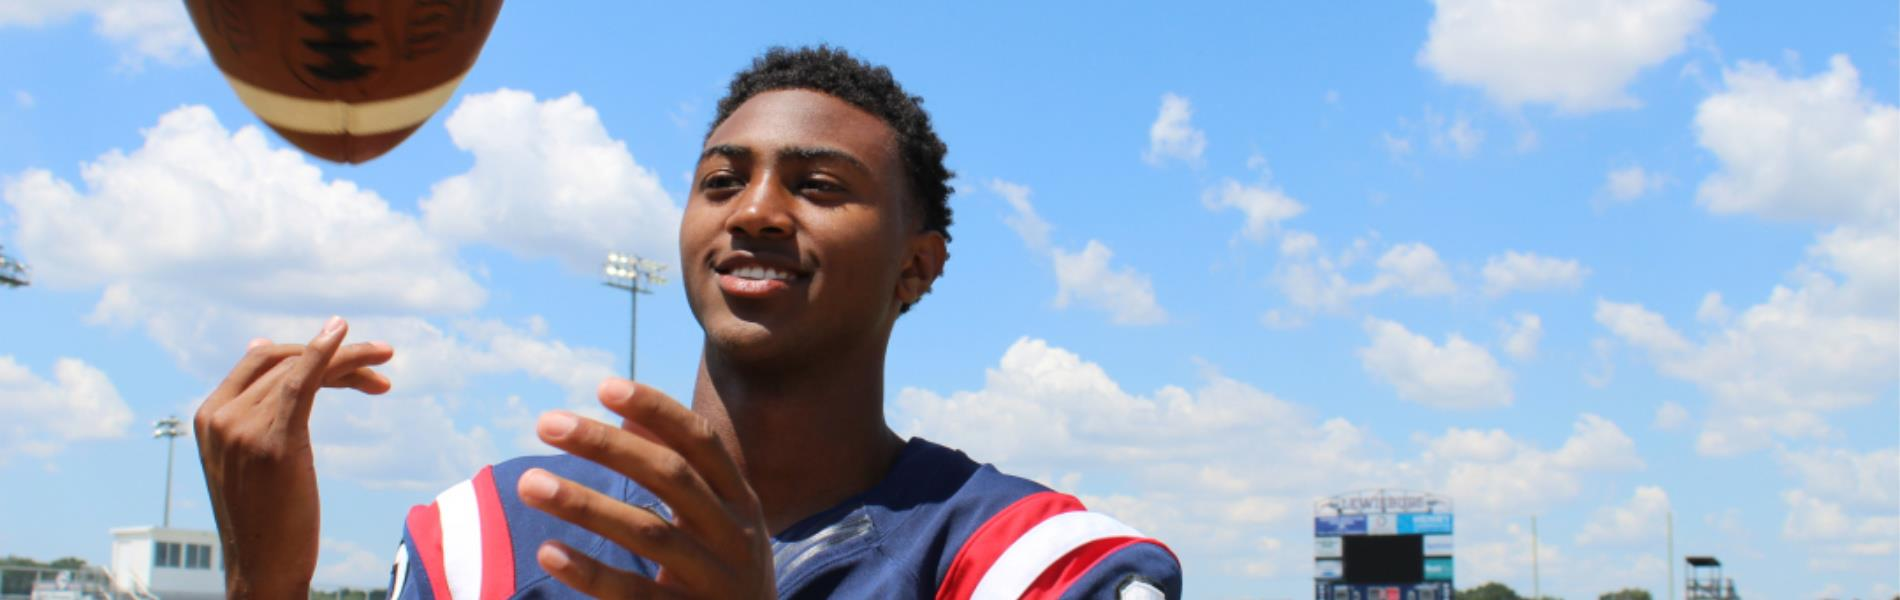 #11 Cameron Threatt, Lewisburg High School football player makes the Dandy Dozen